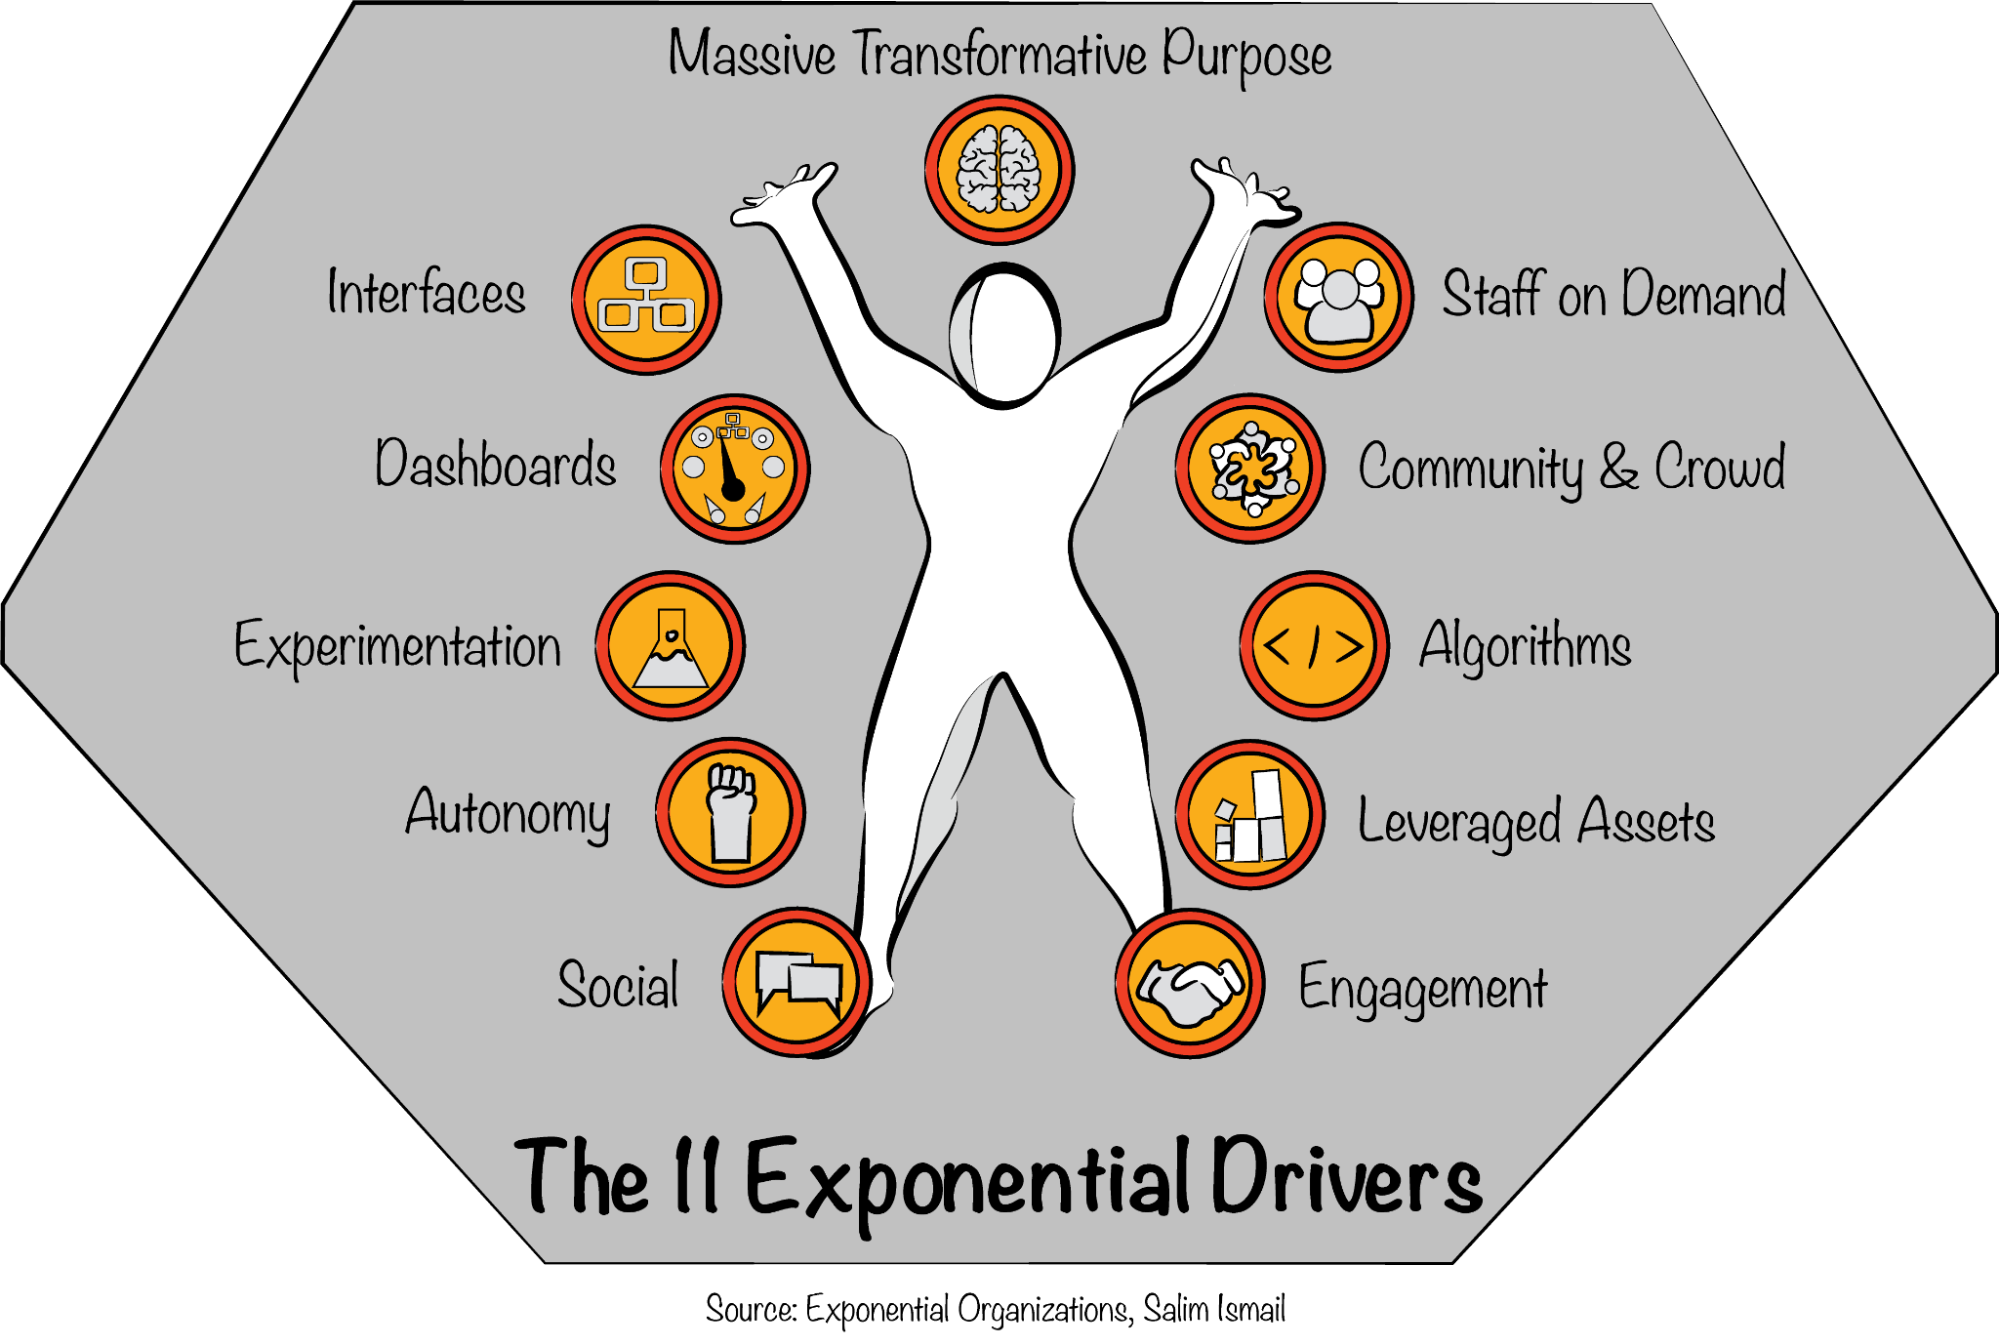 The book Exponential Organizations articulates eleven drivers of exponential growth.